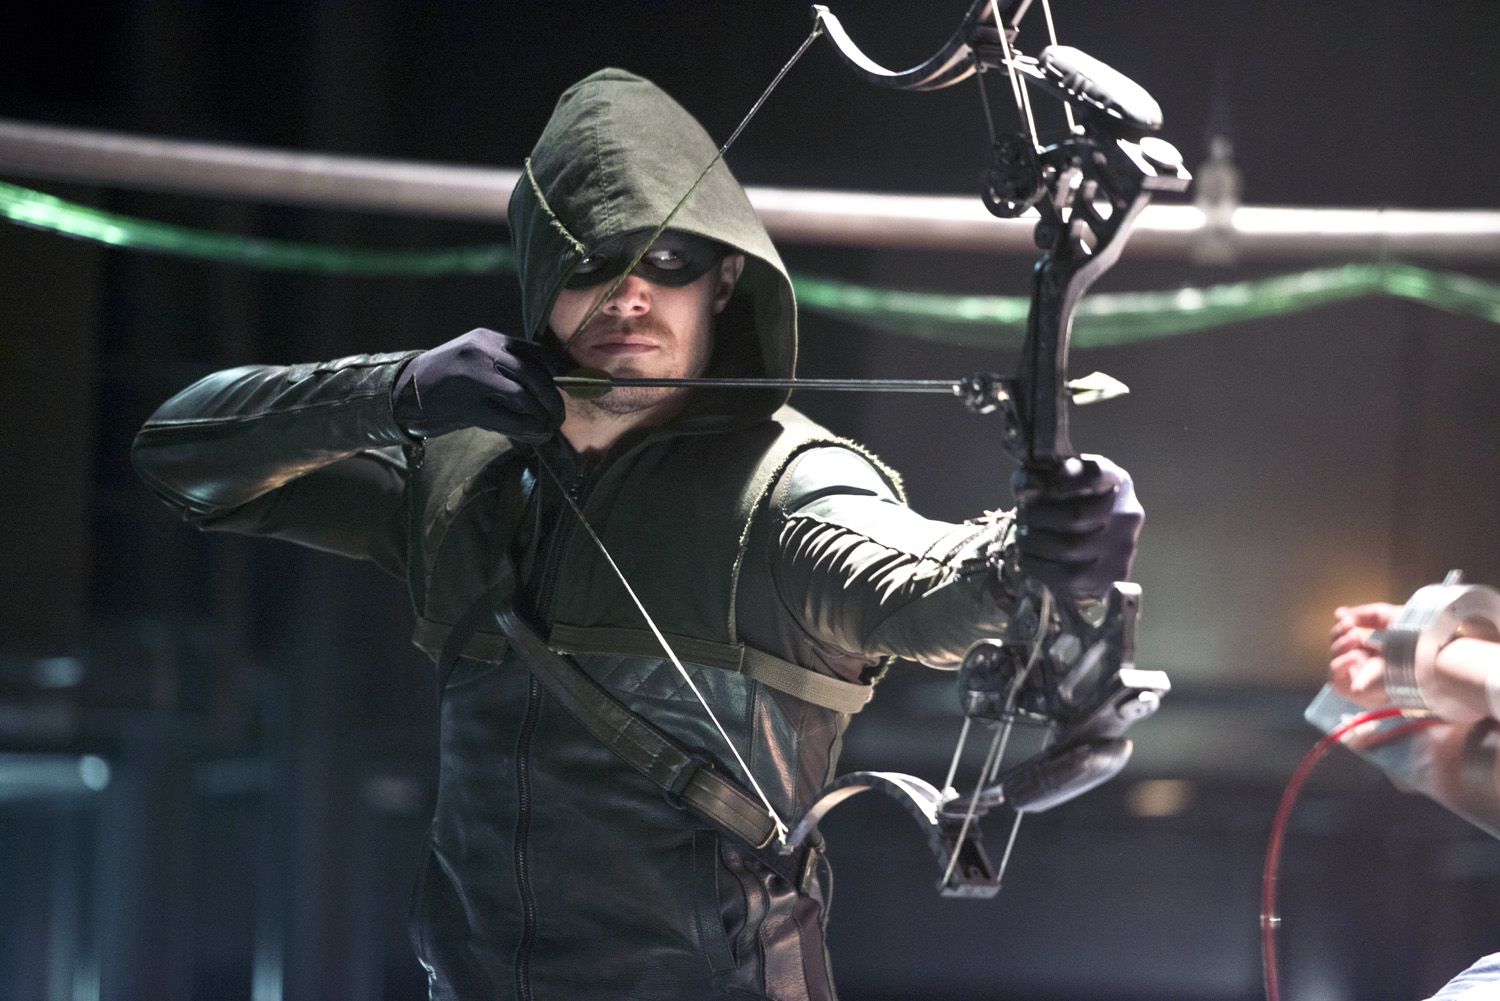 Stephen Amell as The Arrow in  The Man Under the Hood  episode.